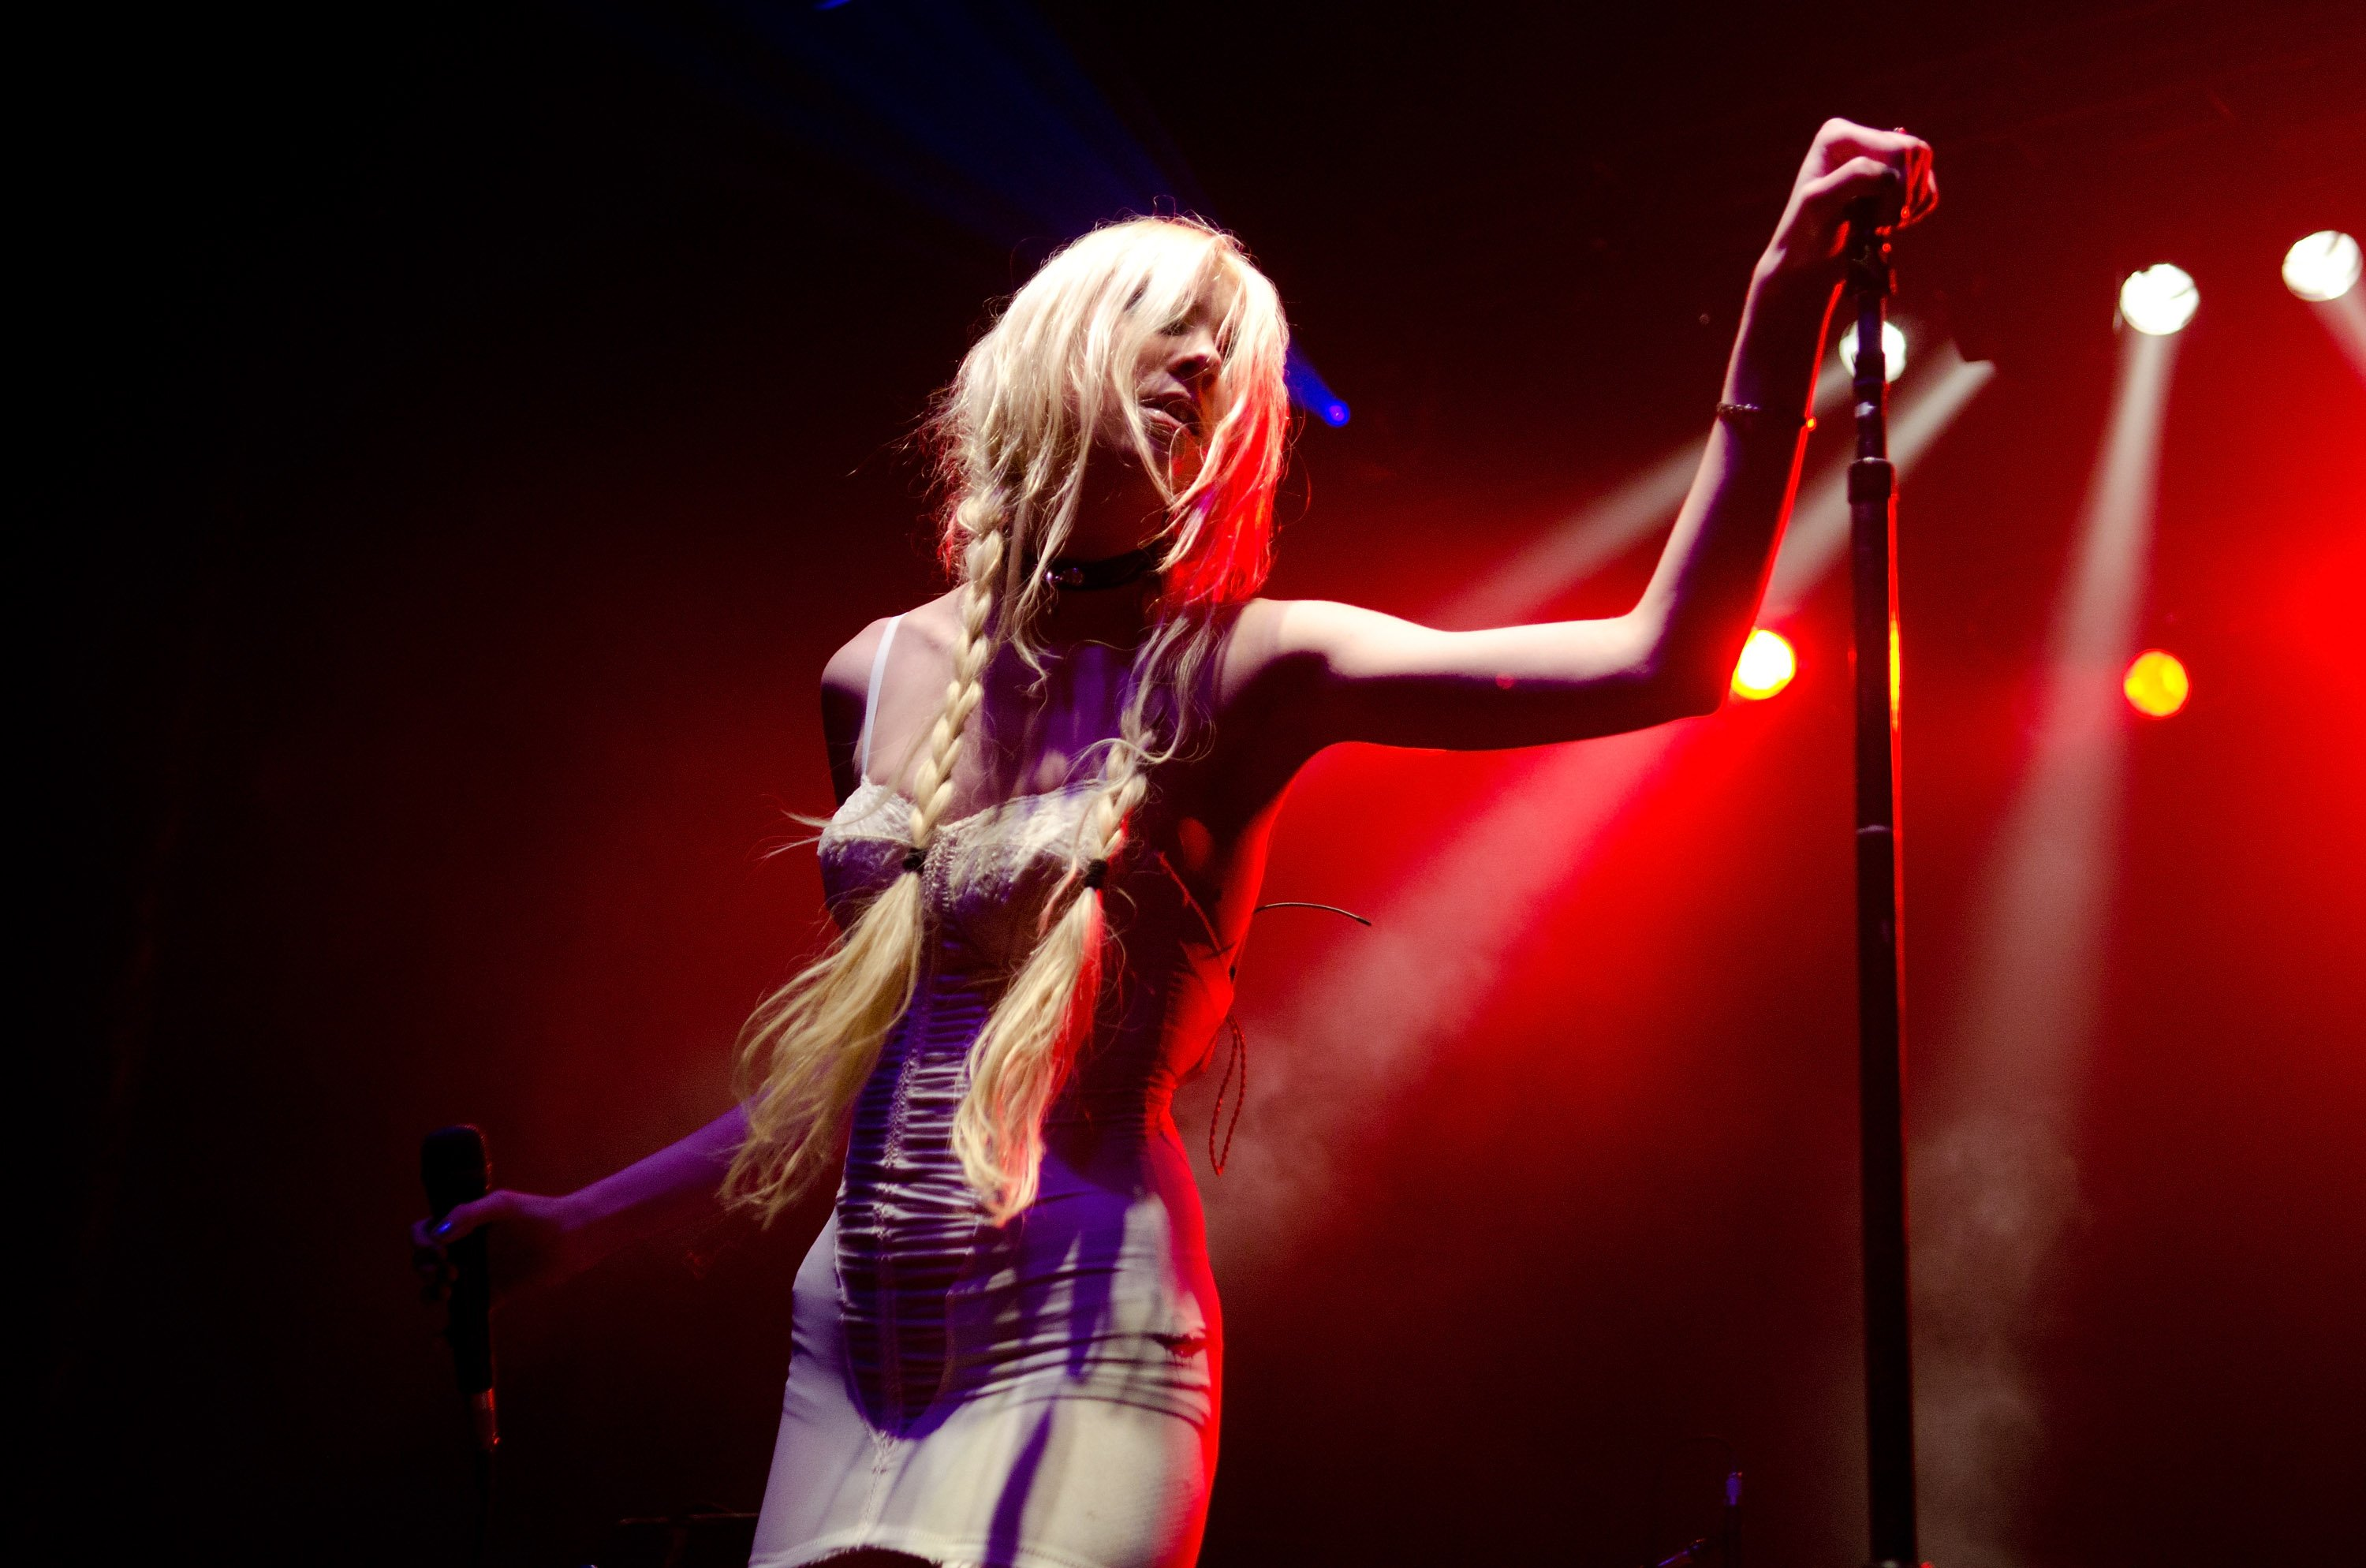 Taylor Momsen performs on stage at The Rave Eagles Club